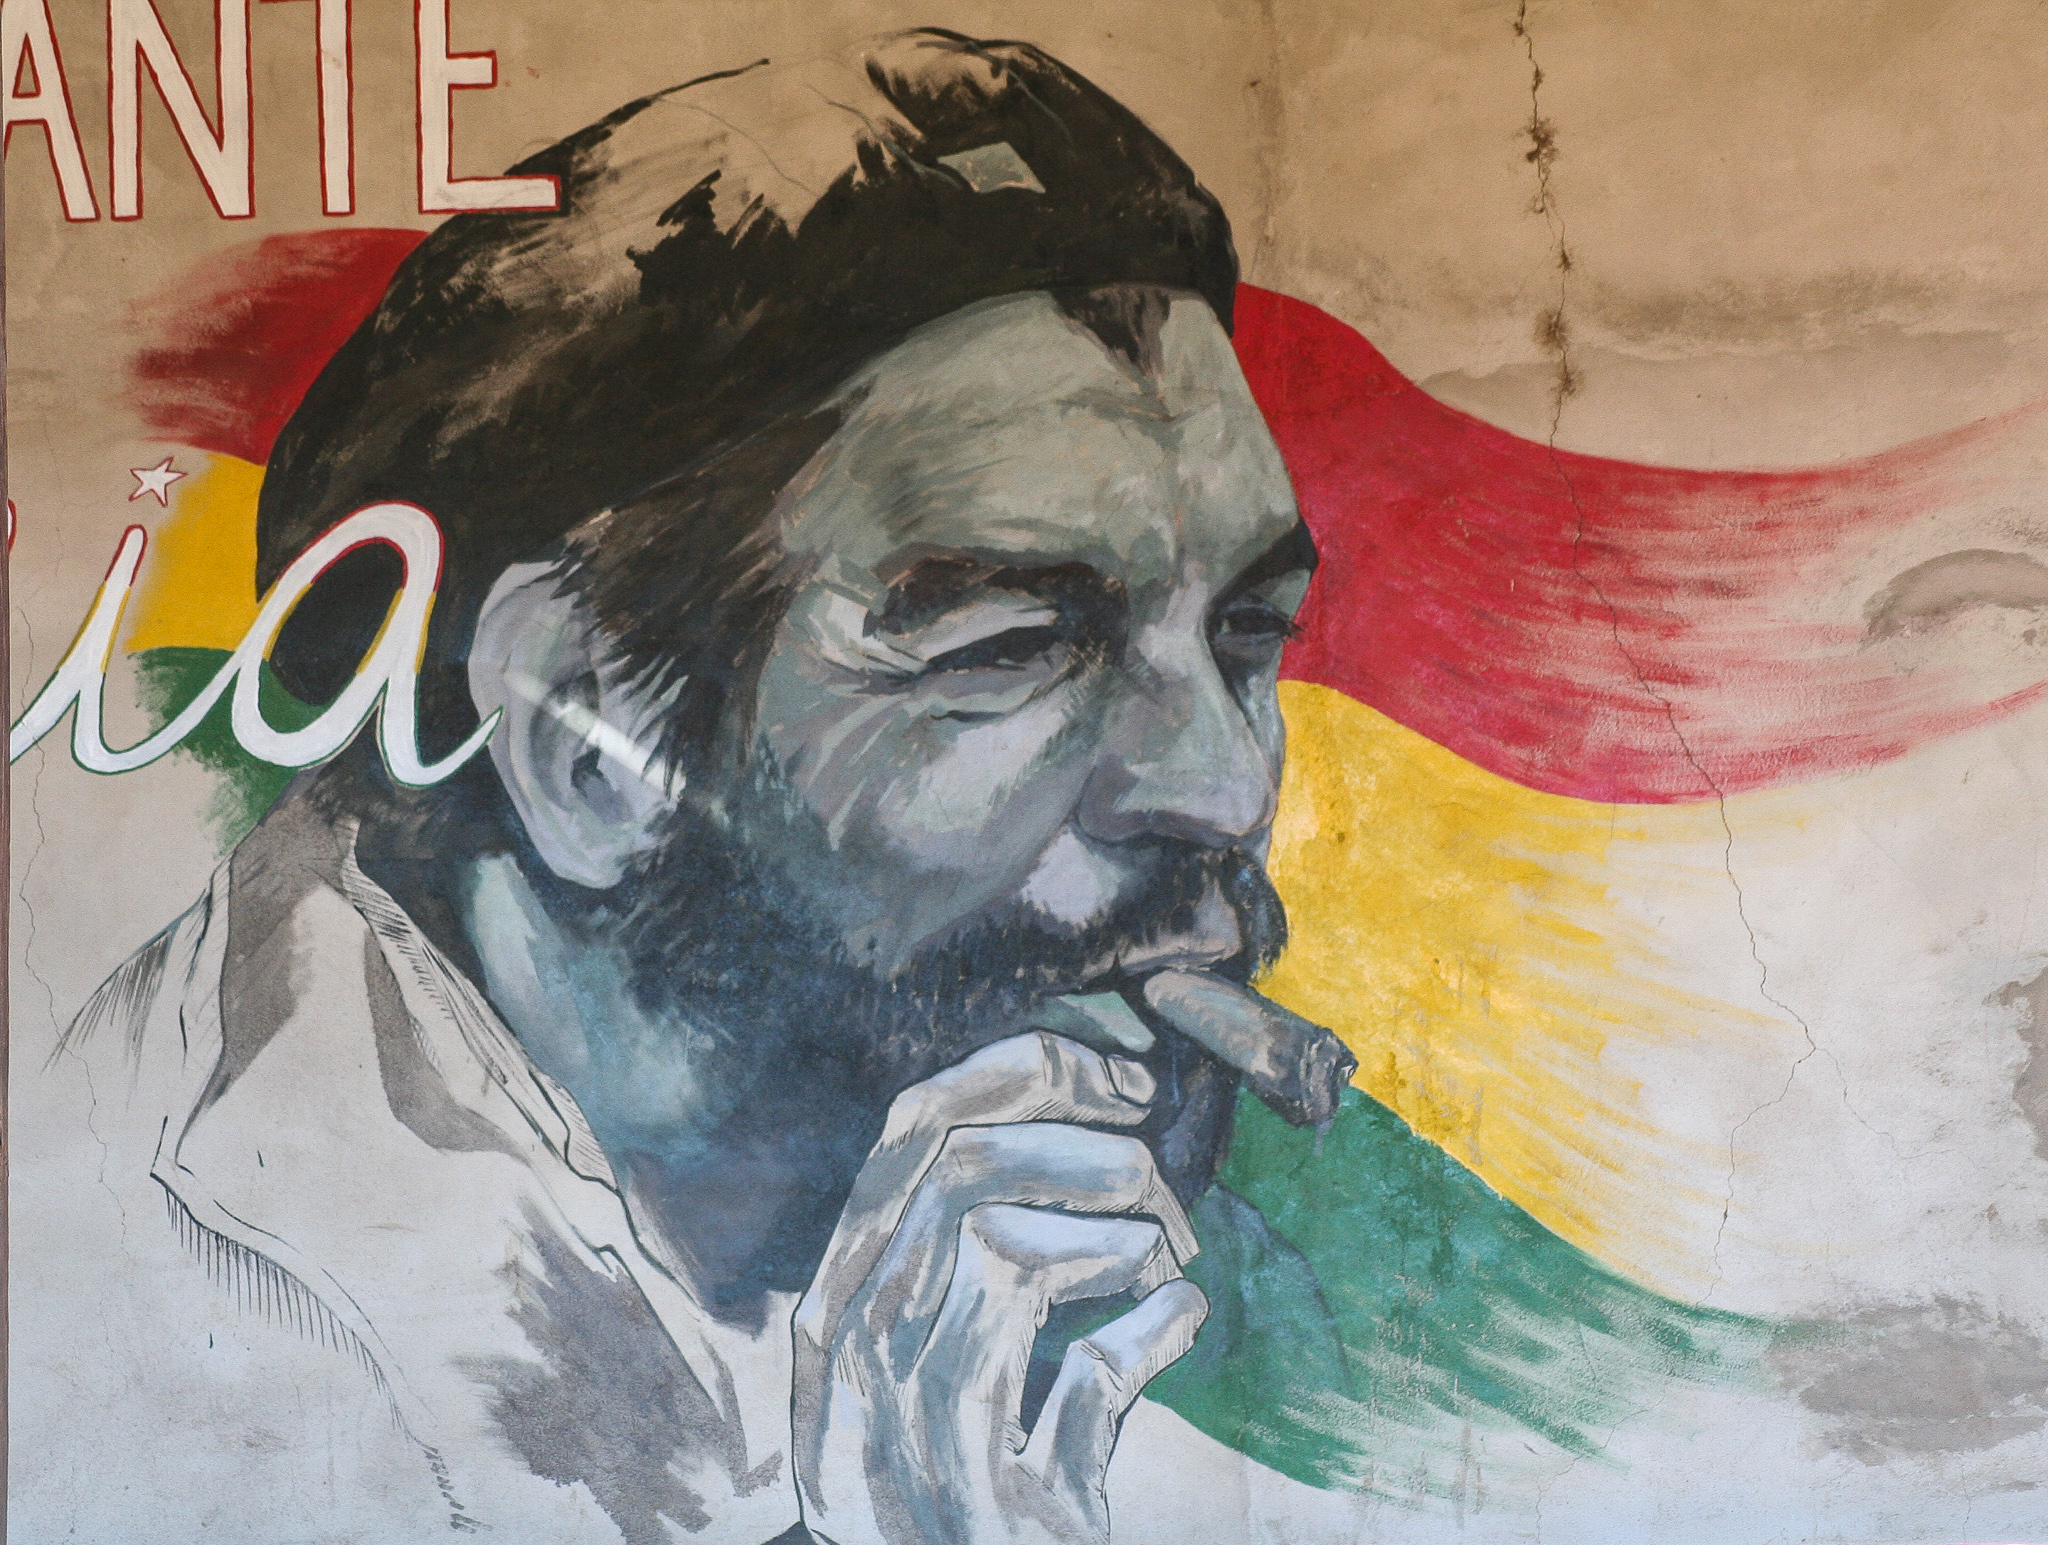 A MURAL OF CHE ON ONE OF THE WALLS IN THE SETTLEMENT OF LA HIGUERA.